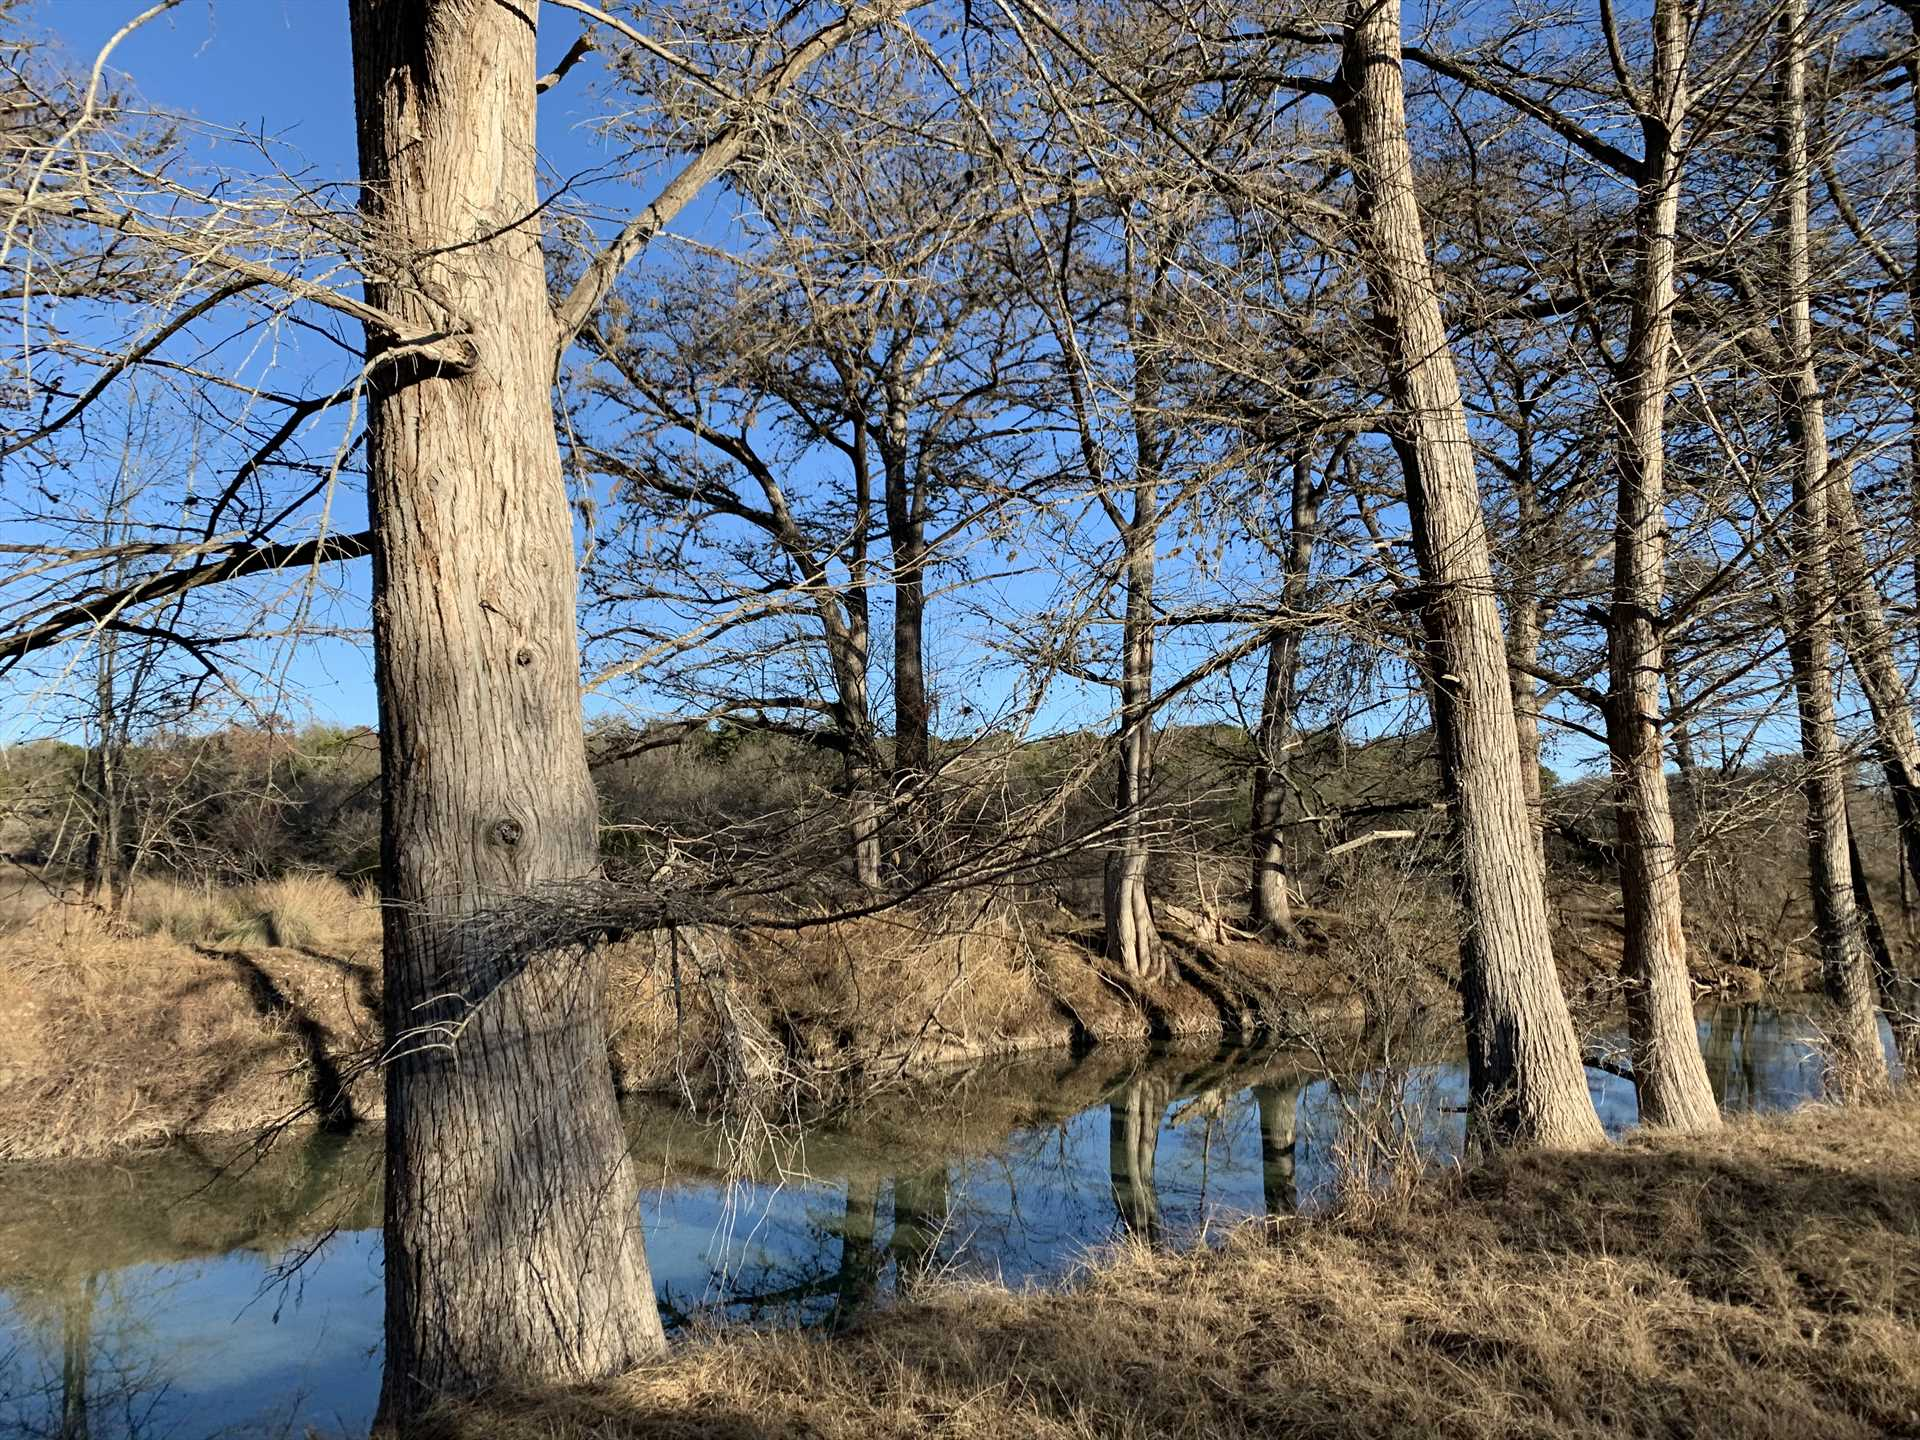 2,000 feet of Medina riverfront are yours to explore, fish, swim, and hike.